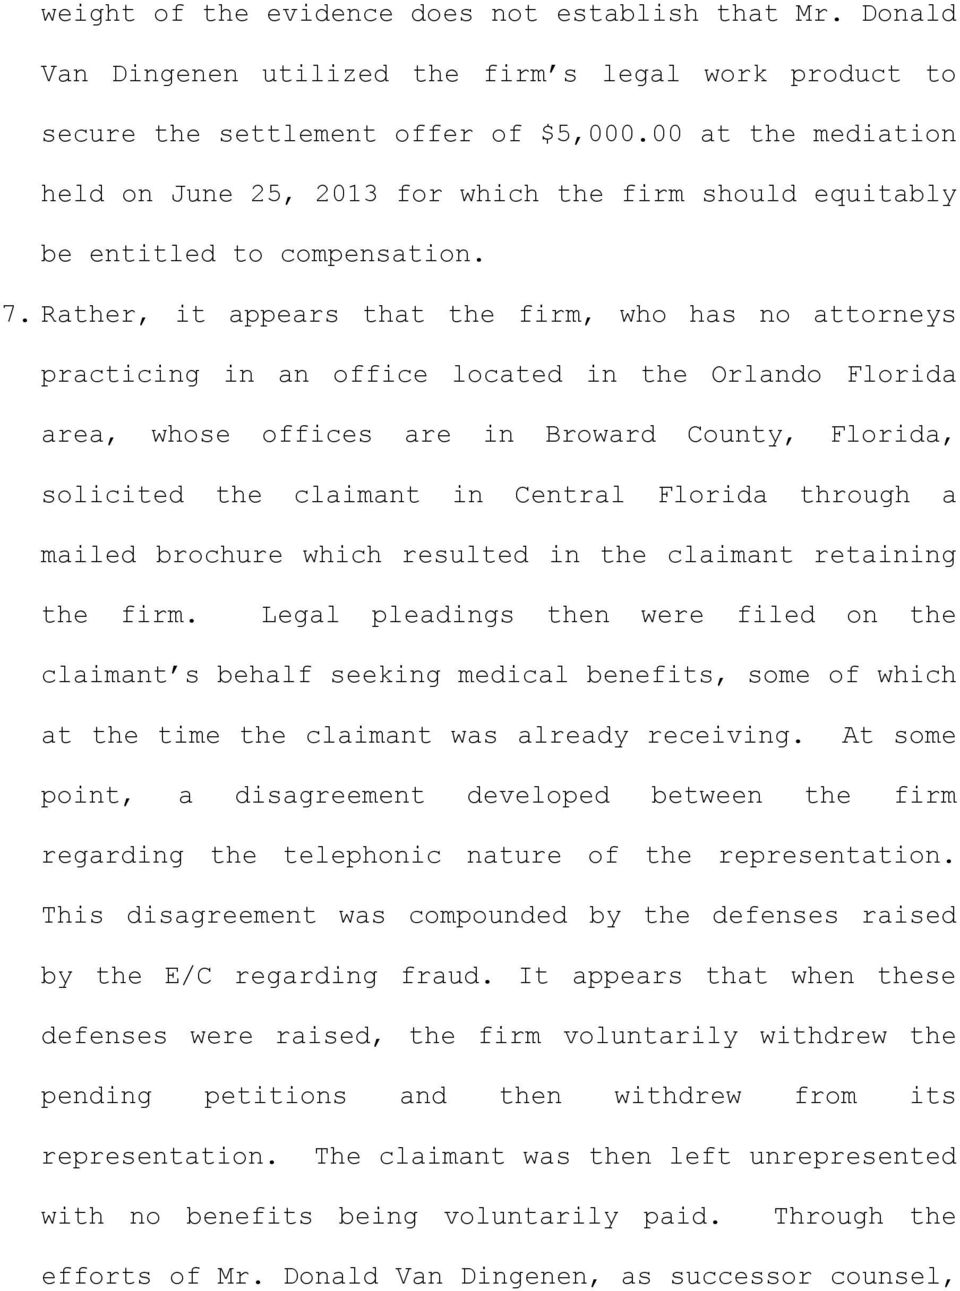 Rather, it appears that the firm, who has no attorneys practicing in an office located in the Orlando Florida area, whose offices are in Broward County, Florida, solicited the claimant in Central